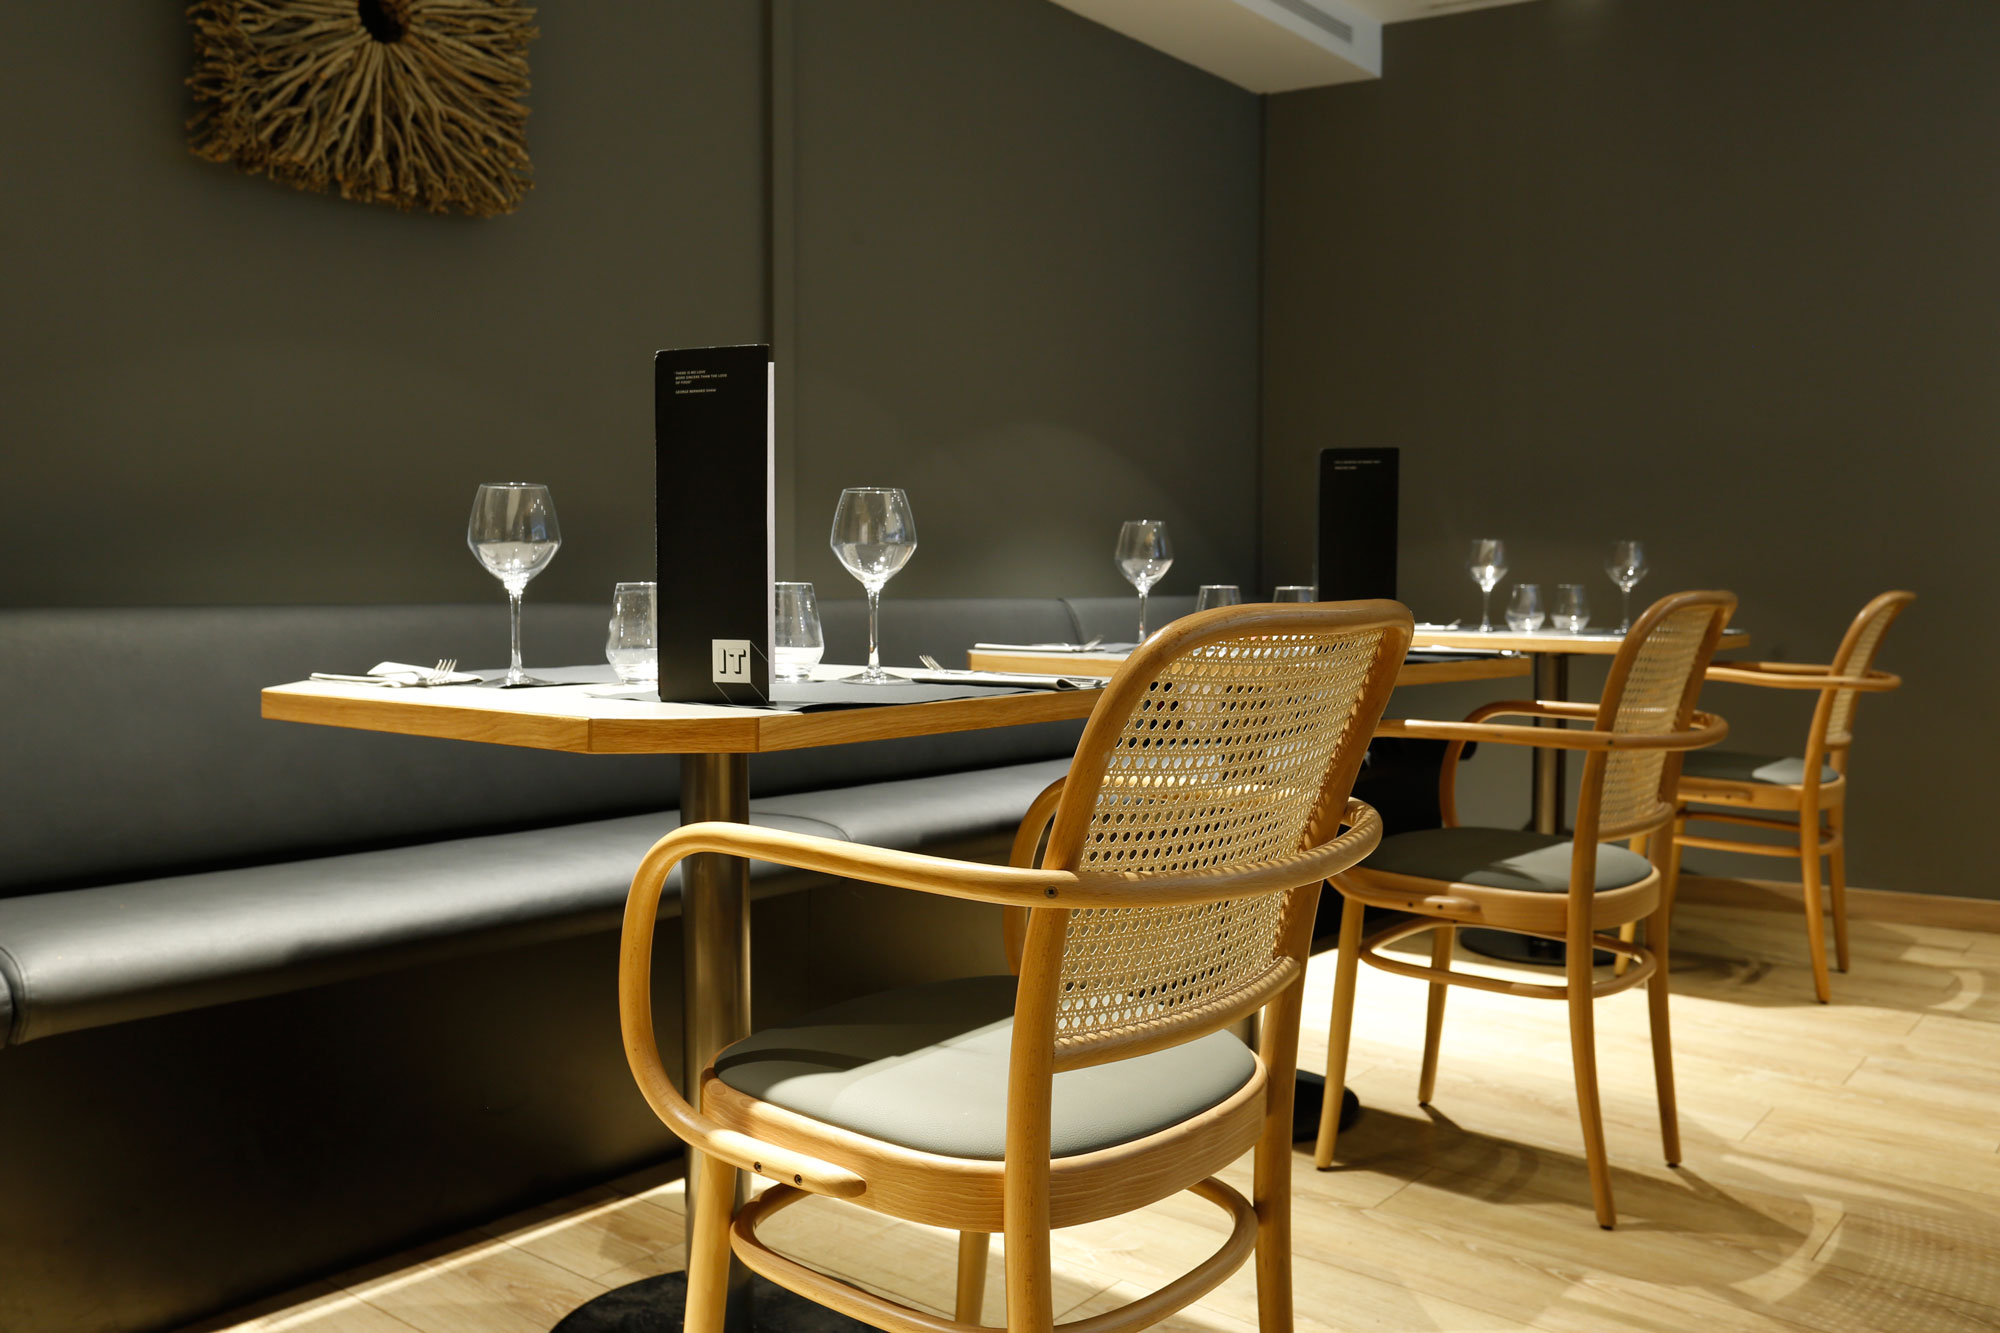 restaurant-IT-Barcelona-mobiliari-Silleria-Verges-3